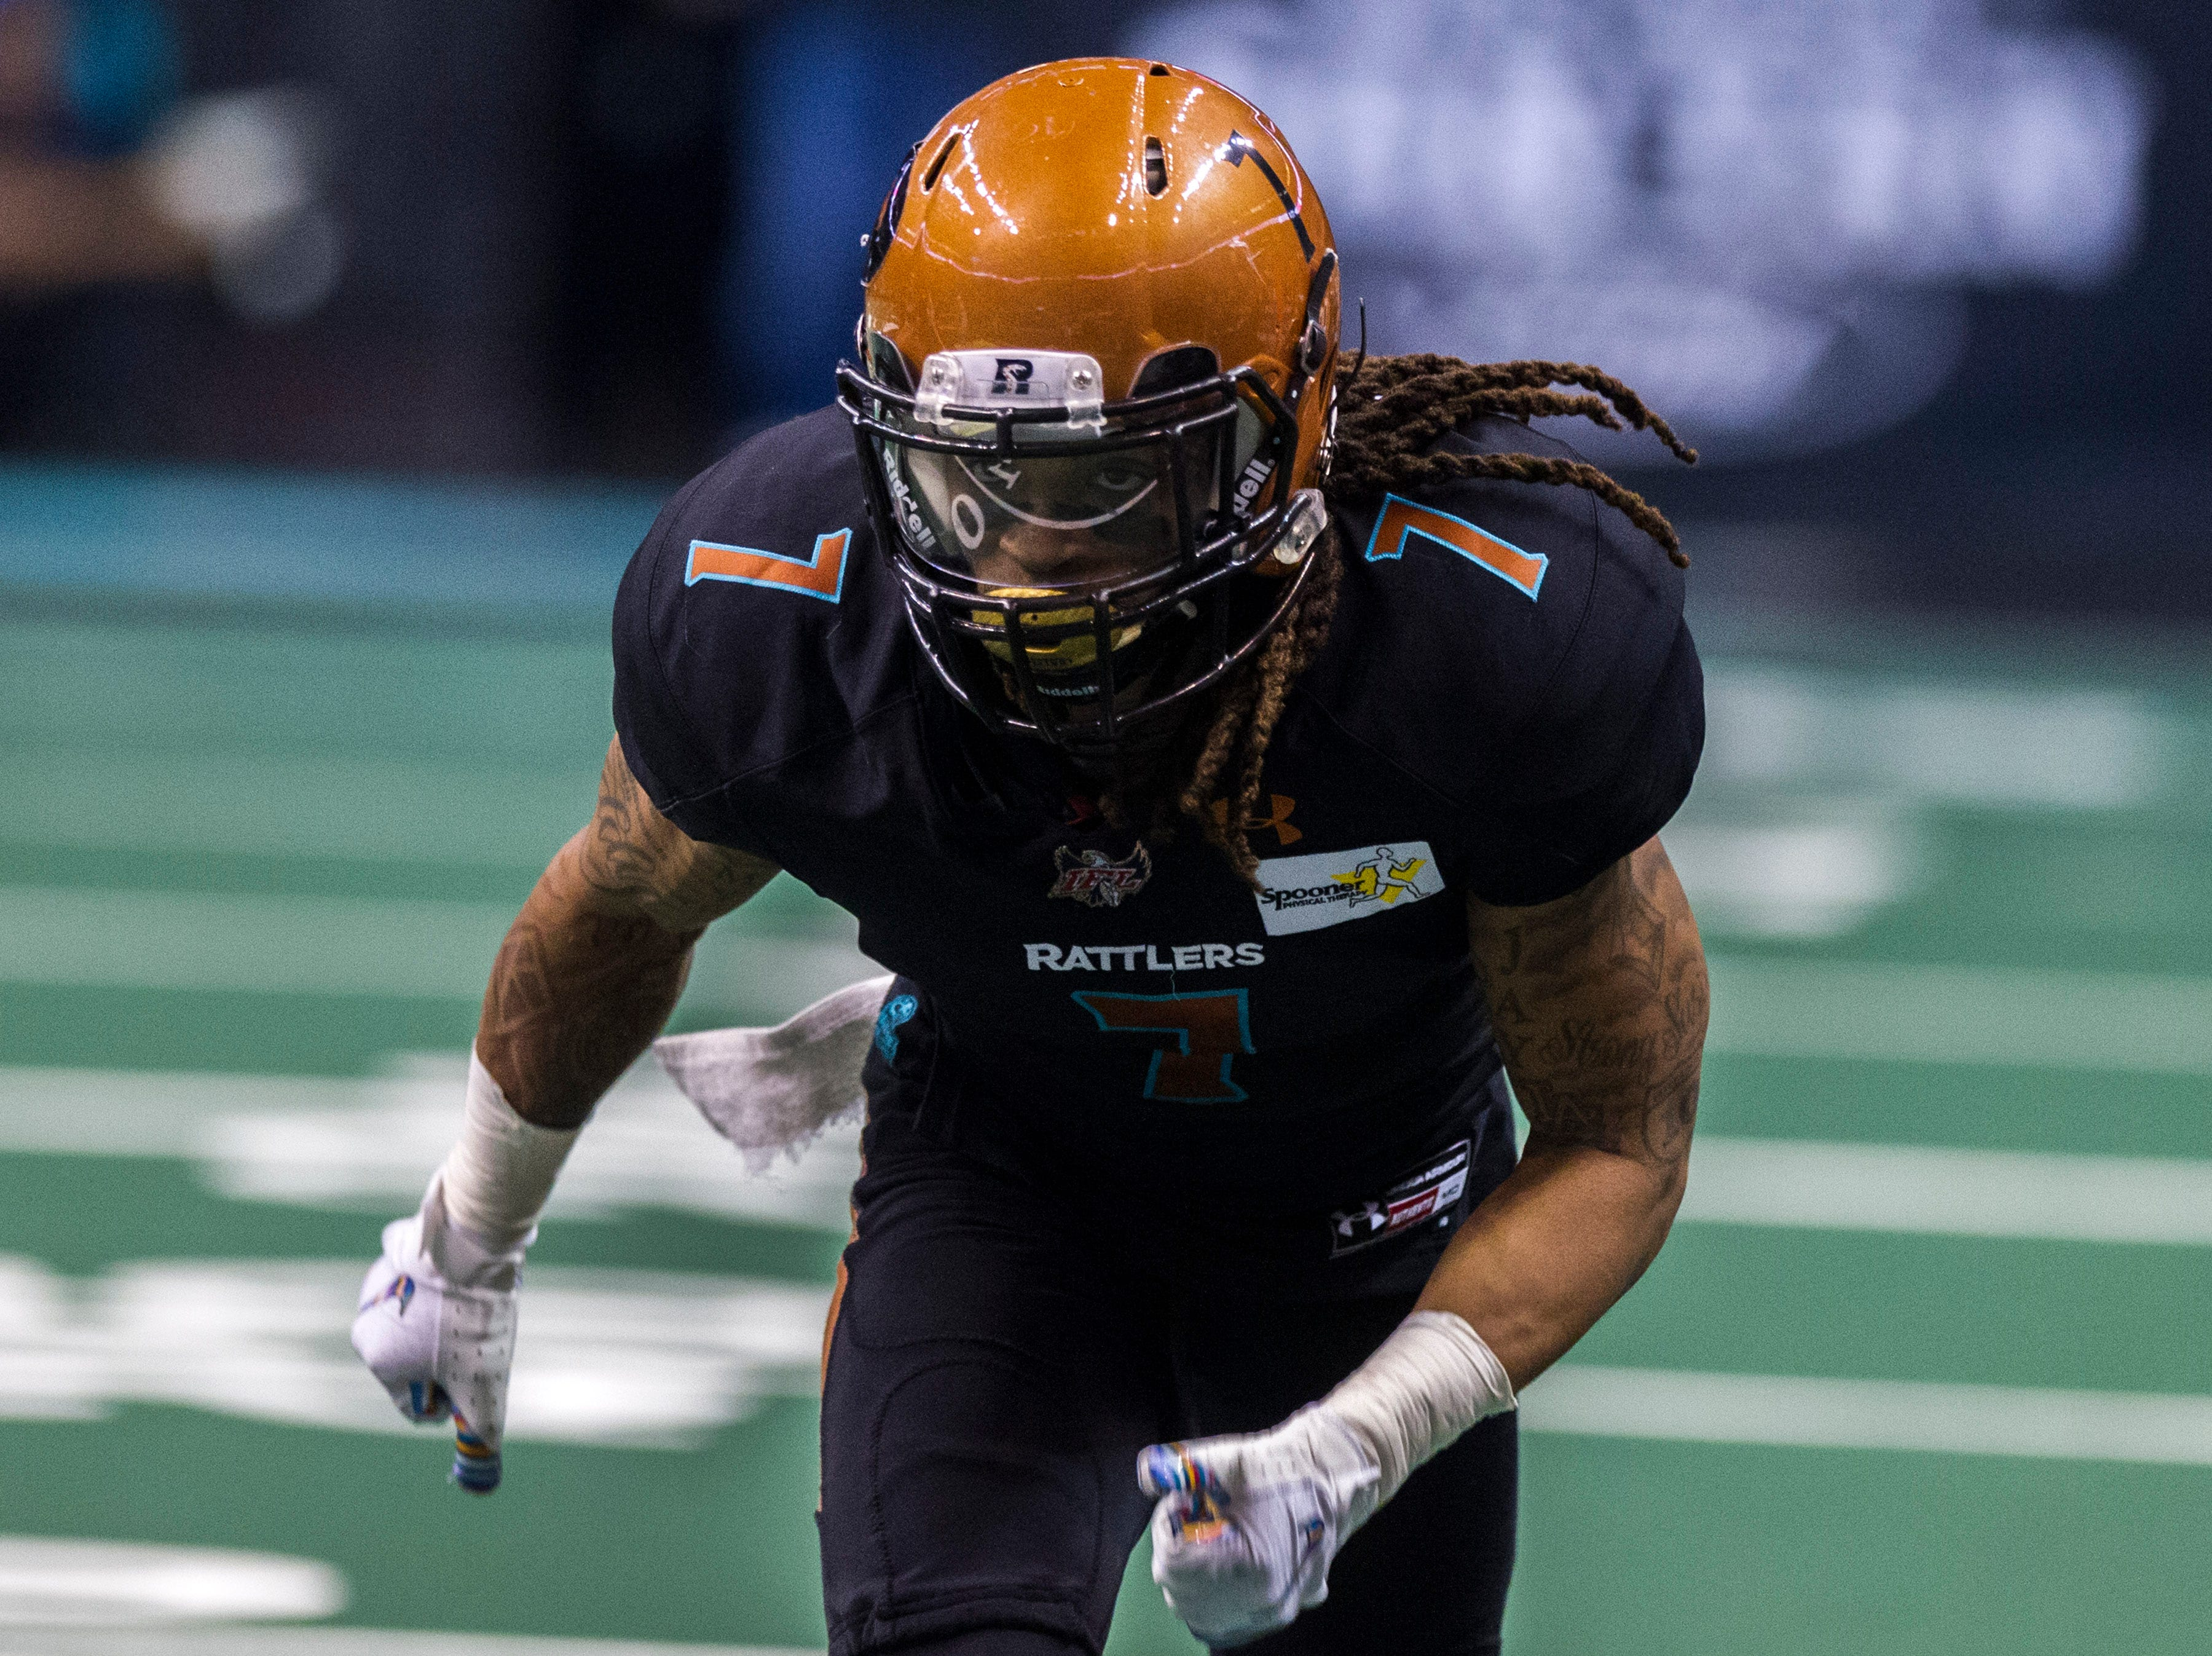 Arizona Rattlers' Sheldon Augustine (7) runs downfield against the San Diego Strike Force during their game at Talking Stick Resort Arena in Phoenix Friday, April. 6, 2019.